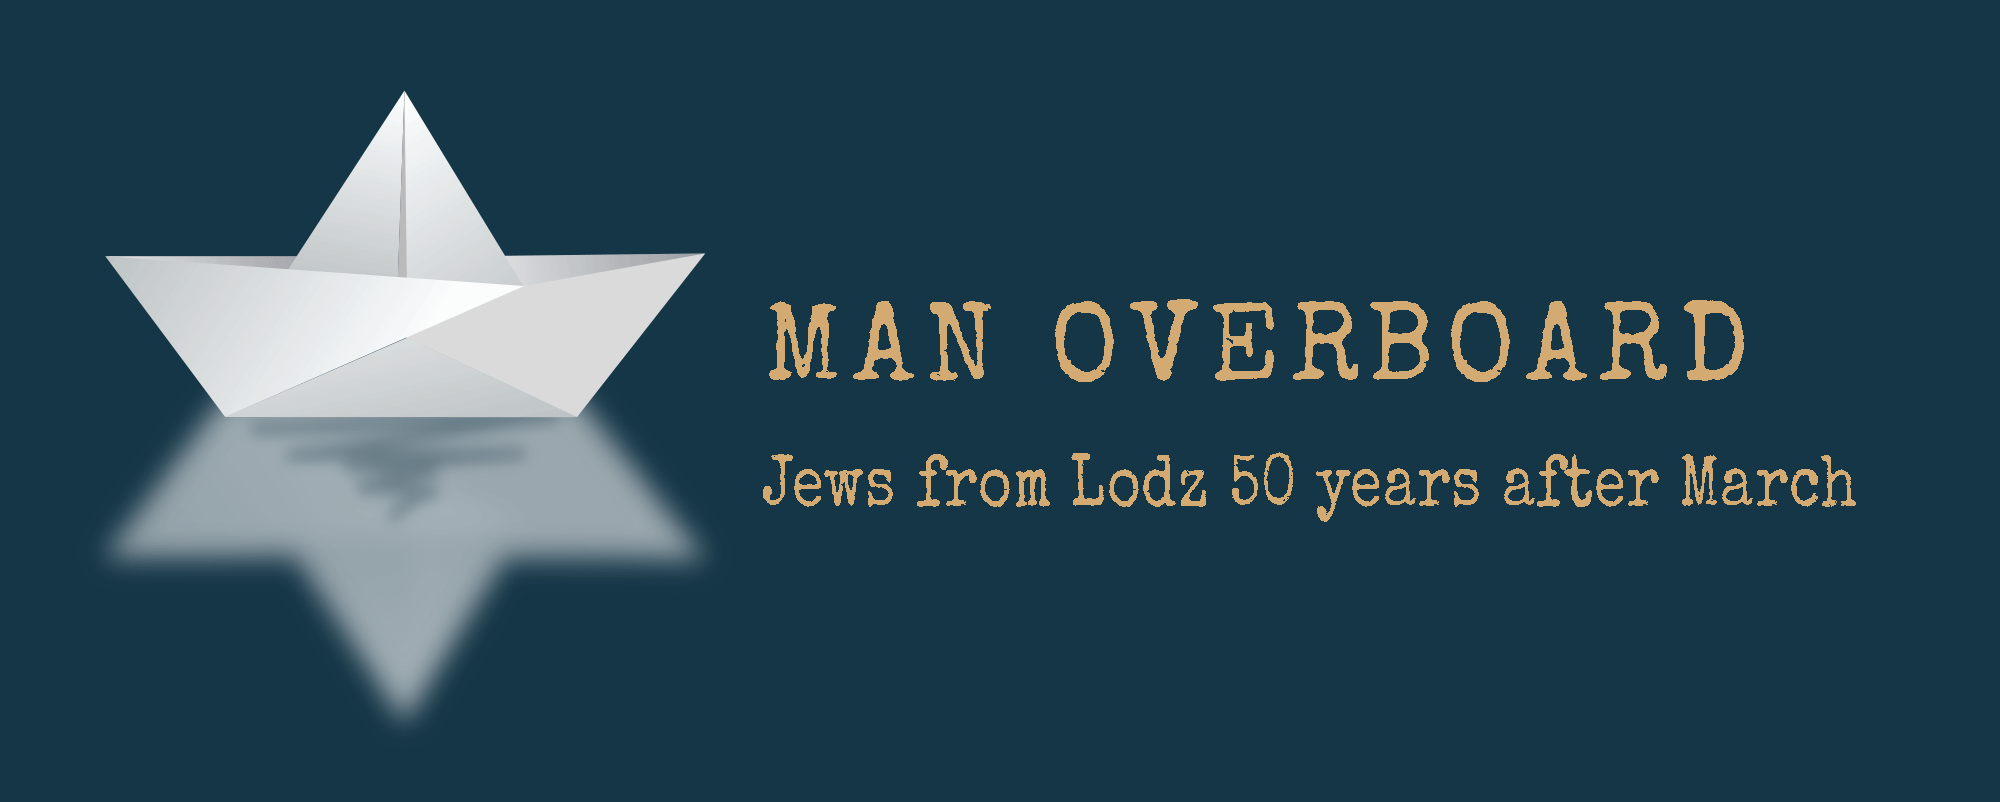 Man Overboard - Jews from Lodz 50 years after March